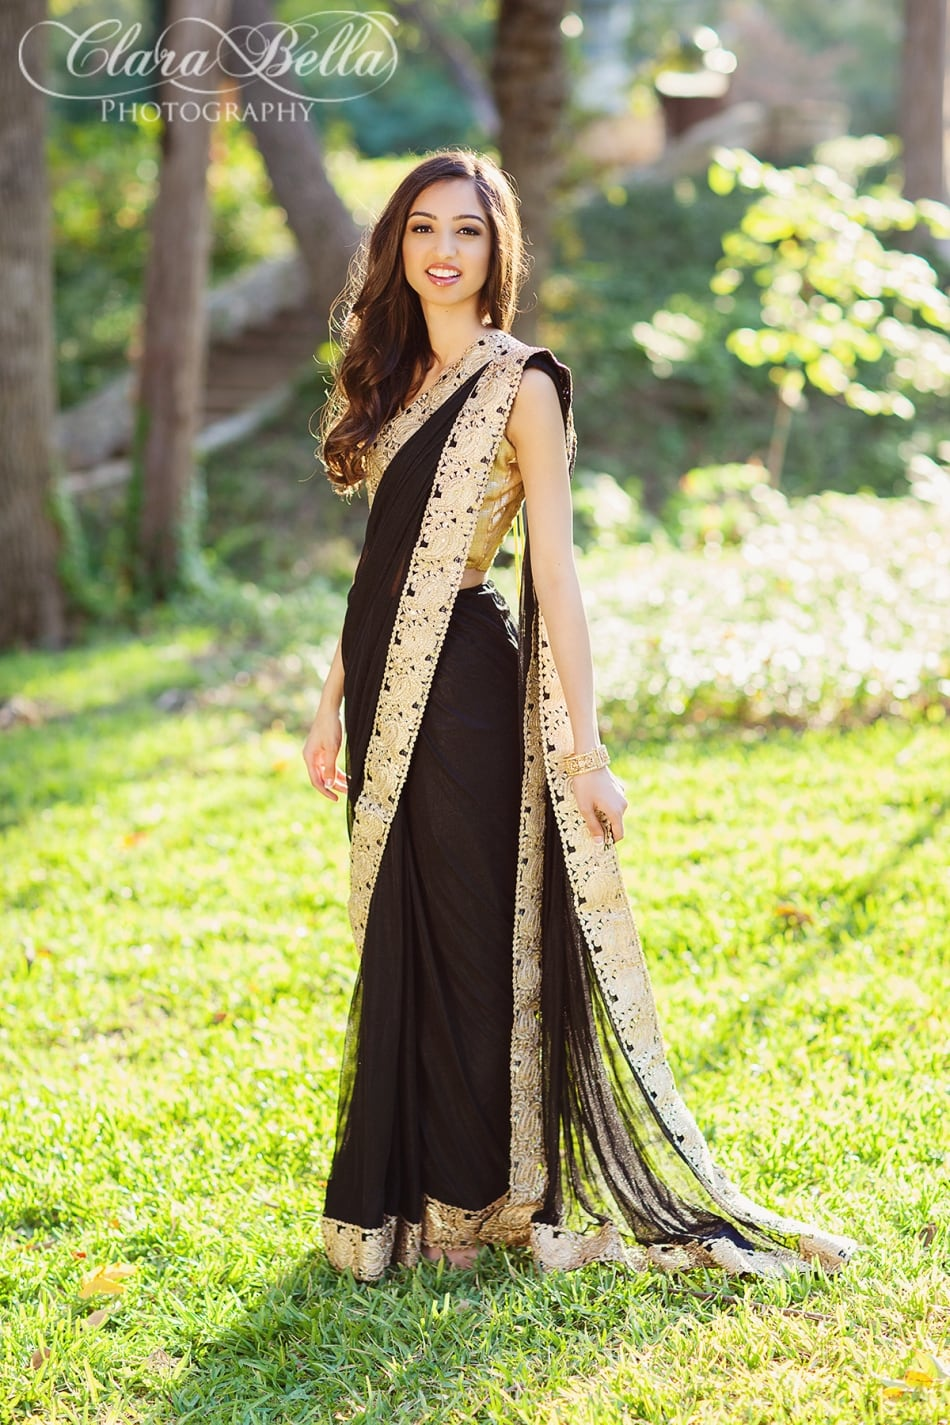 salwa senior personals Senior personals  the online dating agencies key task is to pre-screen each person in their service profile with a system that allows you to read information from each person you have an interest in.